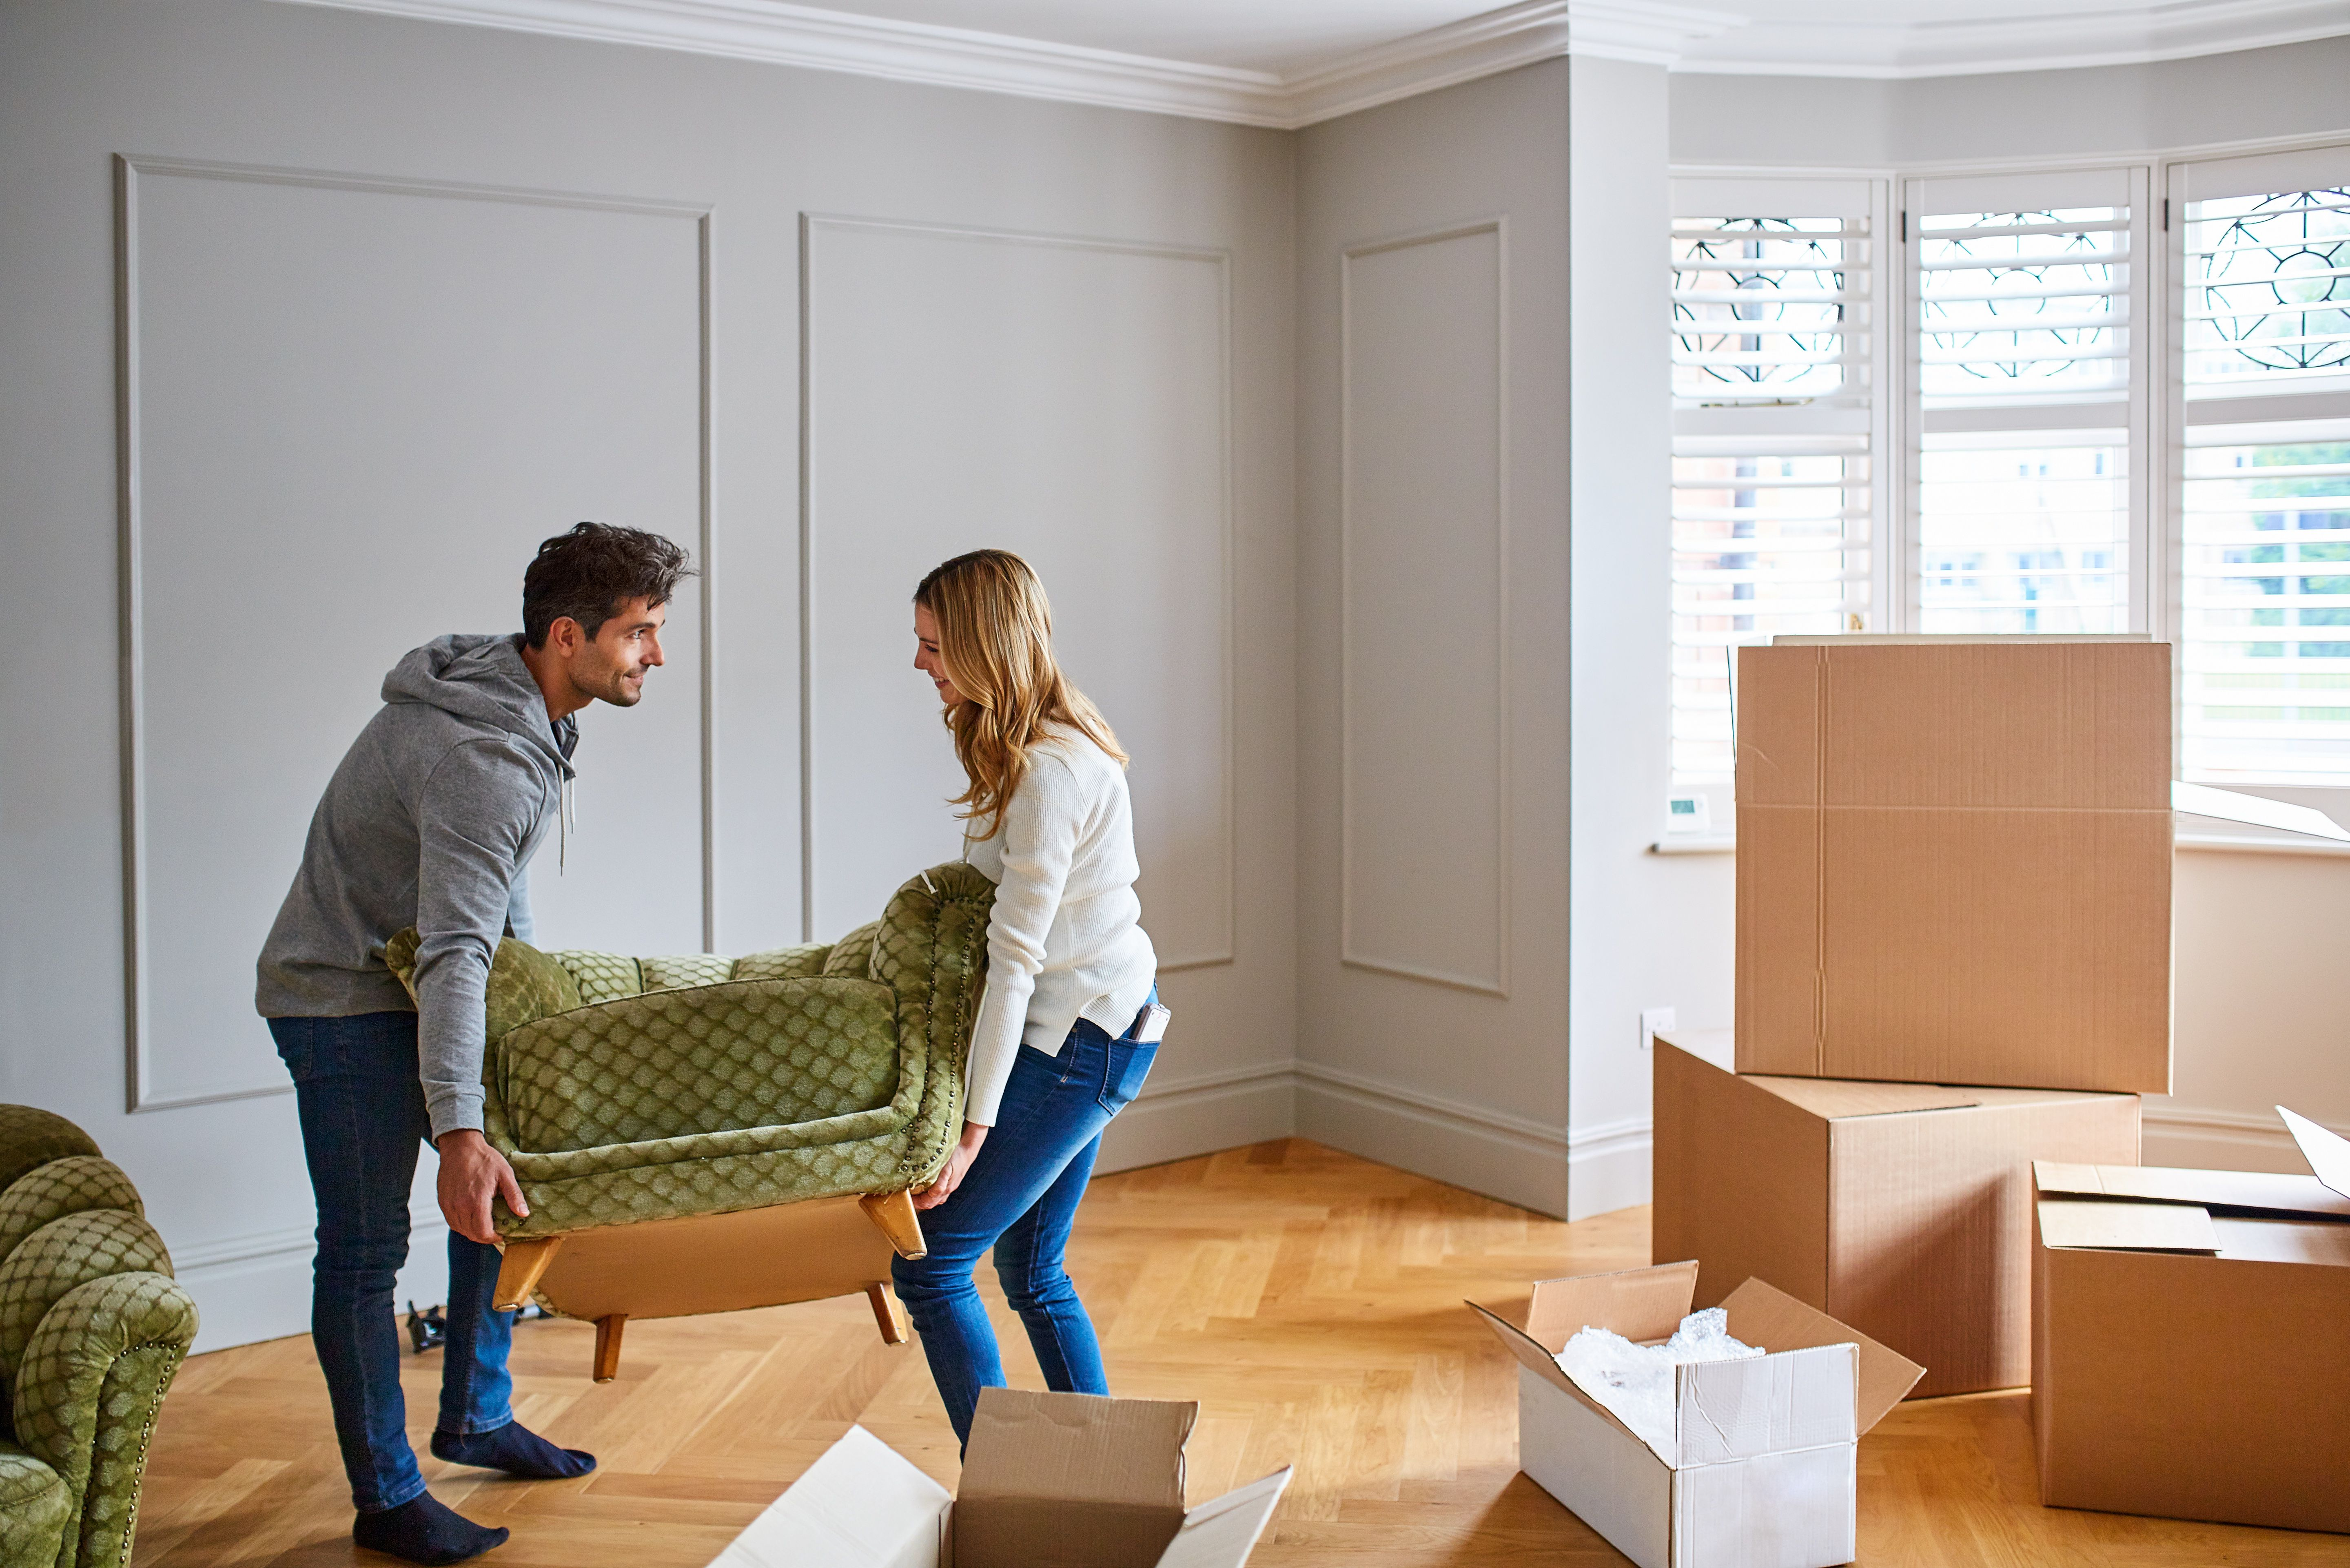 How to Find an Affordable First Apartment